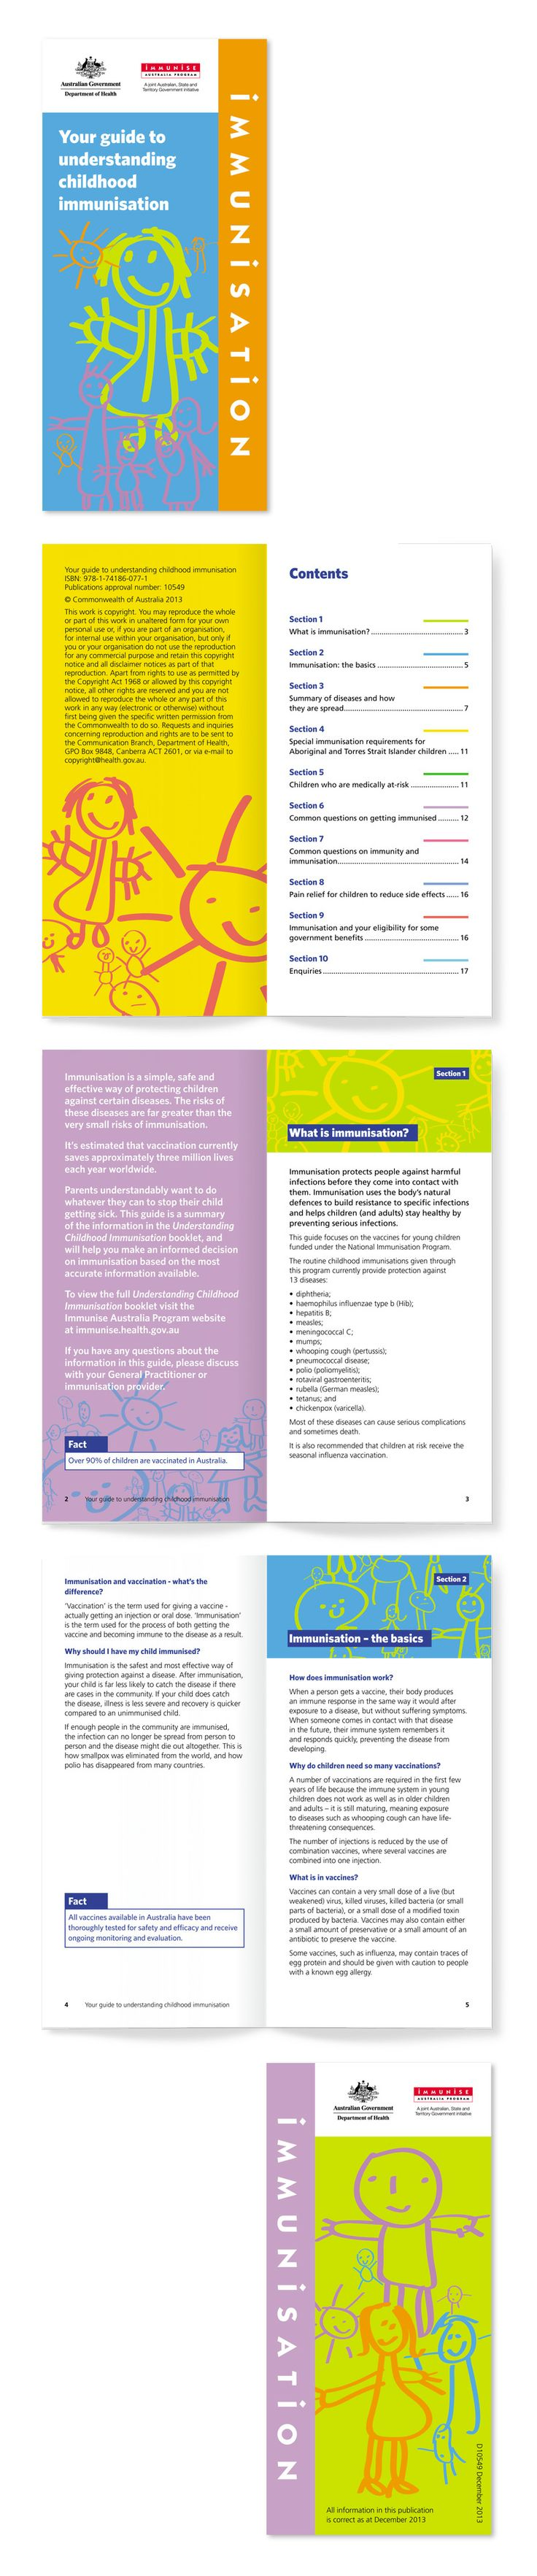 Your guide to understanding childhood immunisation DL brochure for the Department of Health. www.fenton.com.au #communication #PR #graphicdesign #brochure